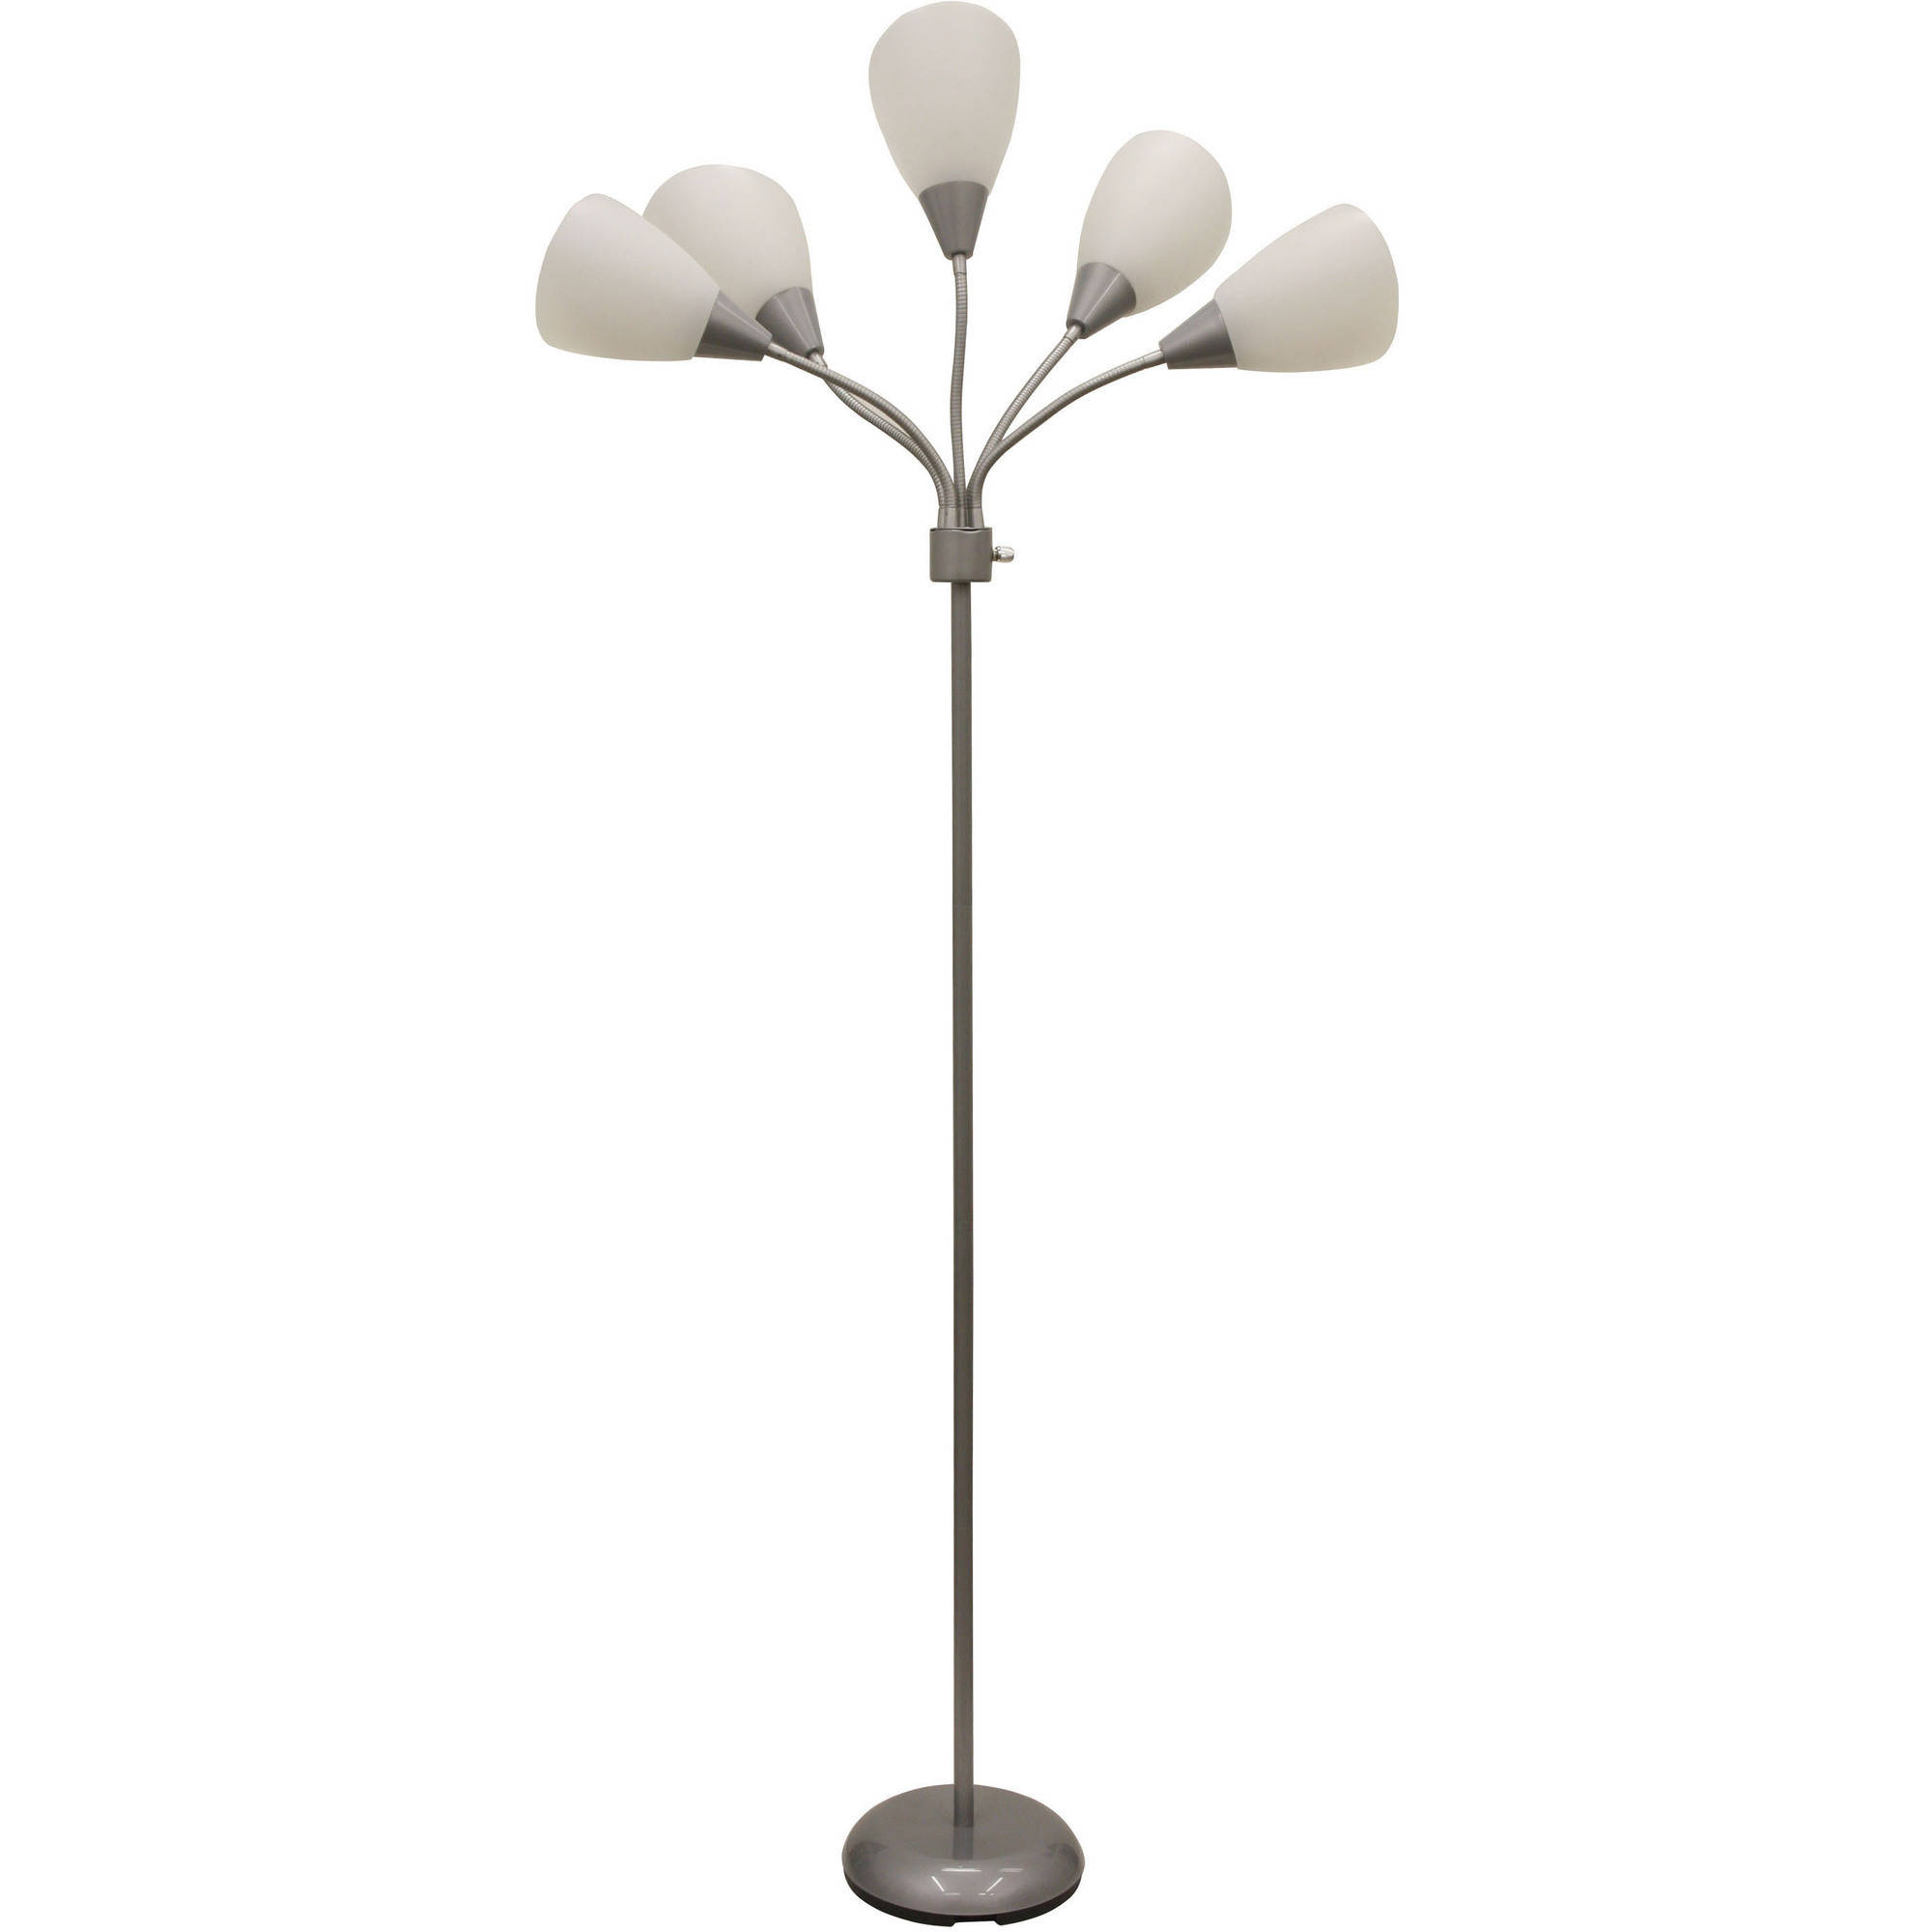 Mainstays 5 Light Floor Lamp, Multiple Colors